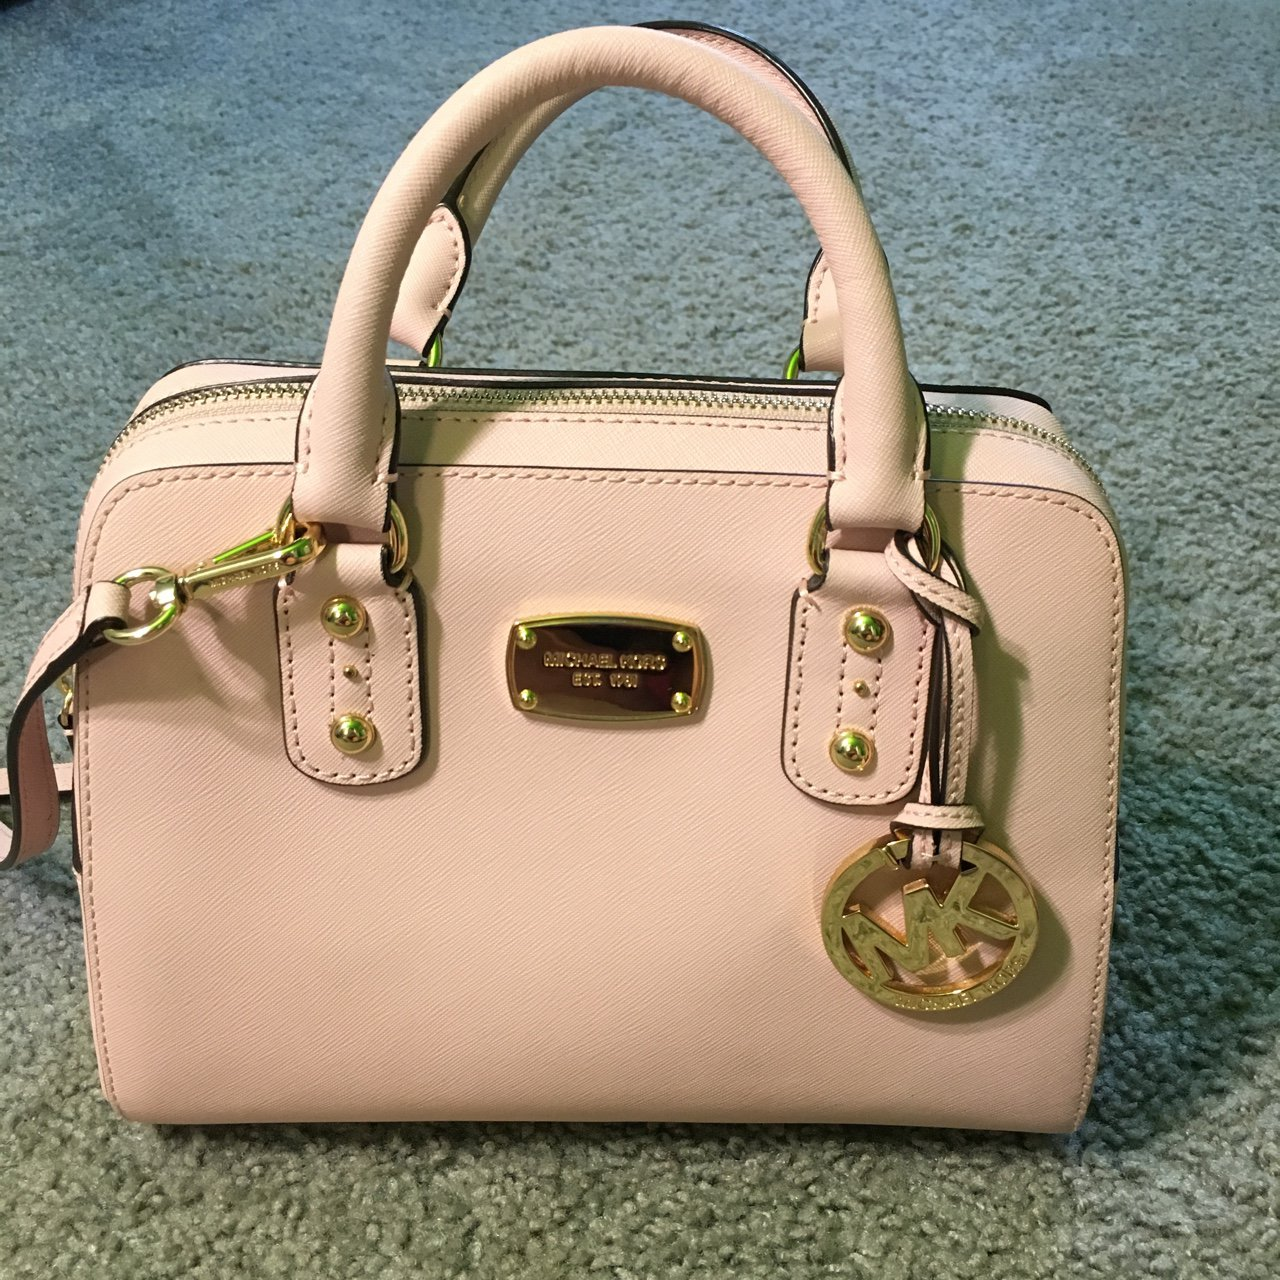 5b443c36c574 Authentic blush pink Michael Kors Purse/Handbag. Amazing in - Depop